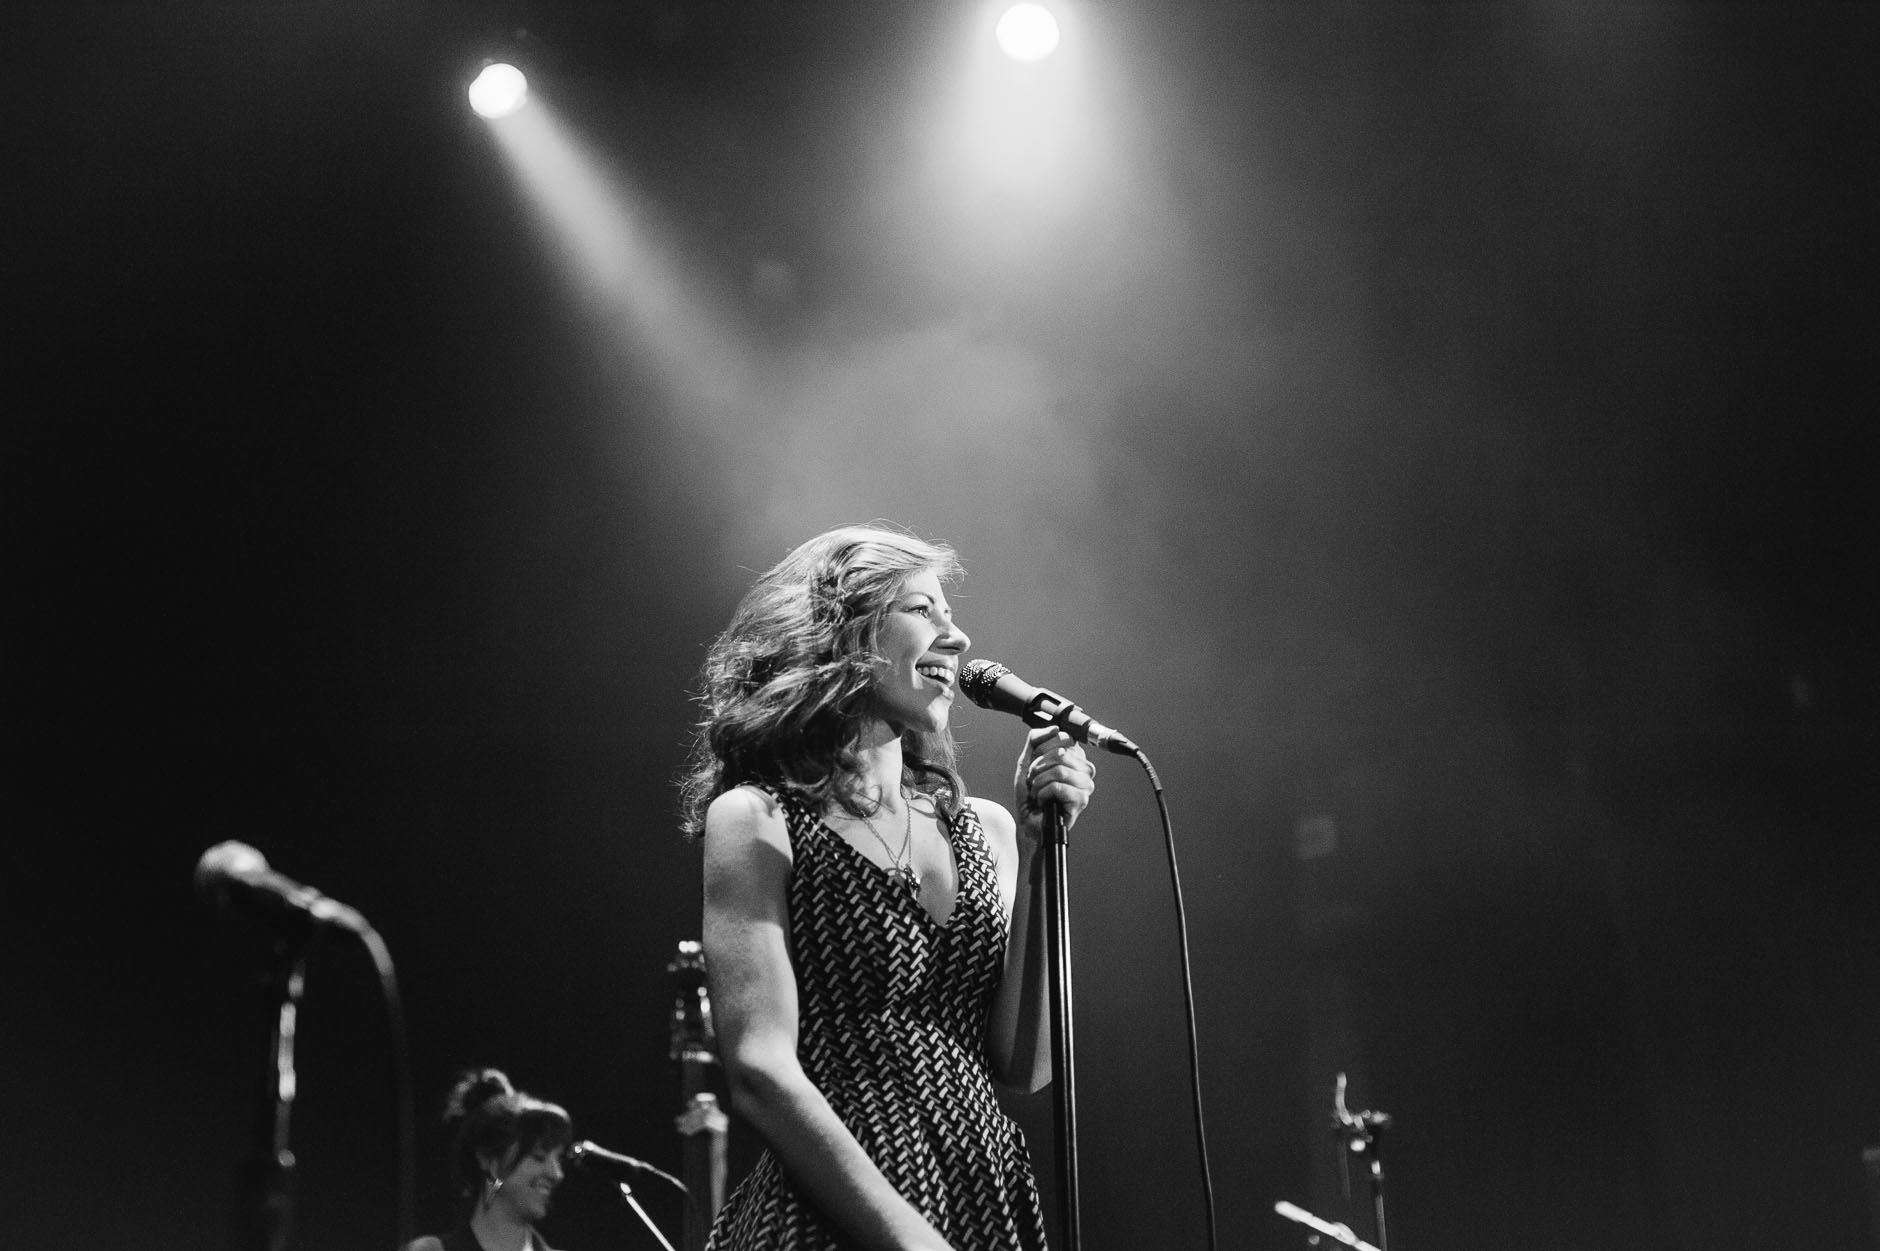 lakestreetdive-Jefferson-feb23-00025